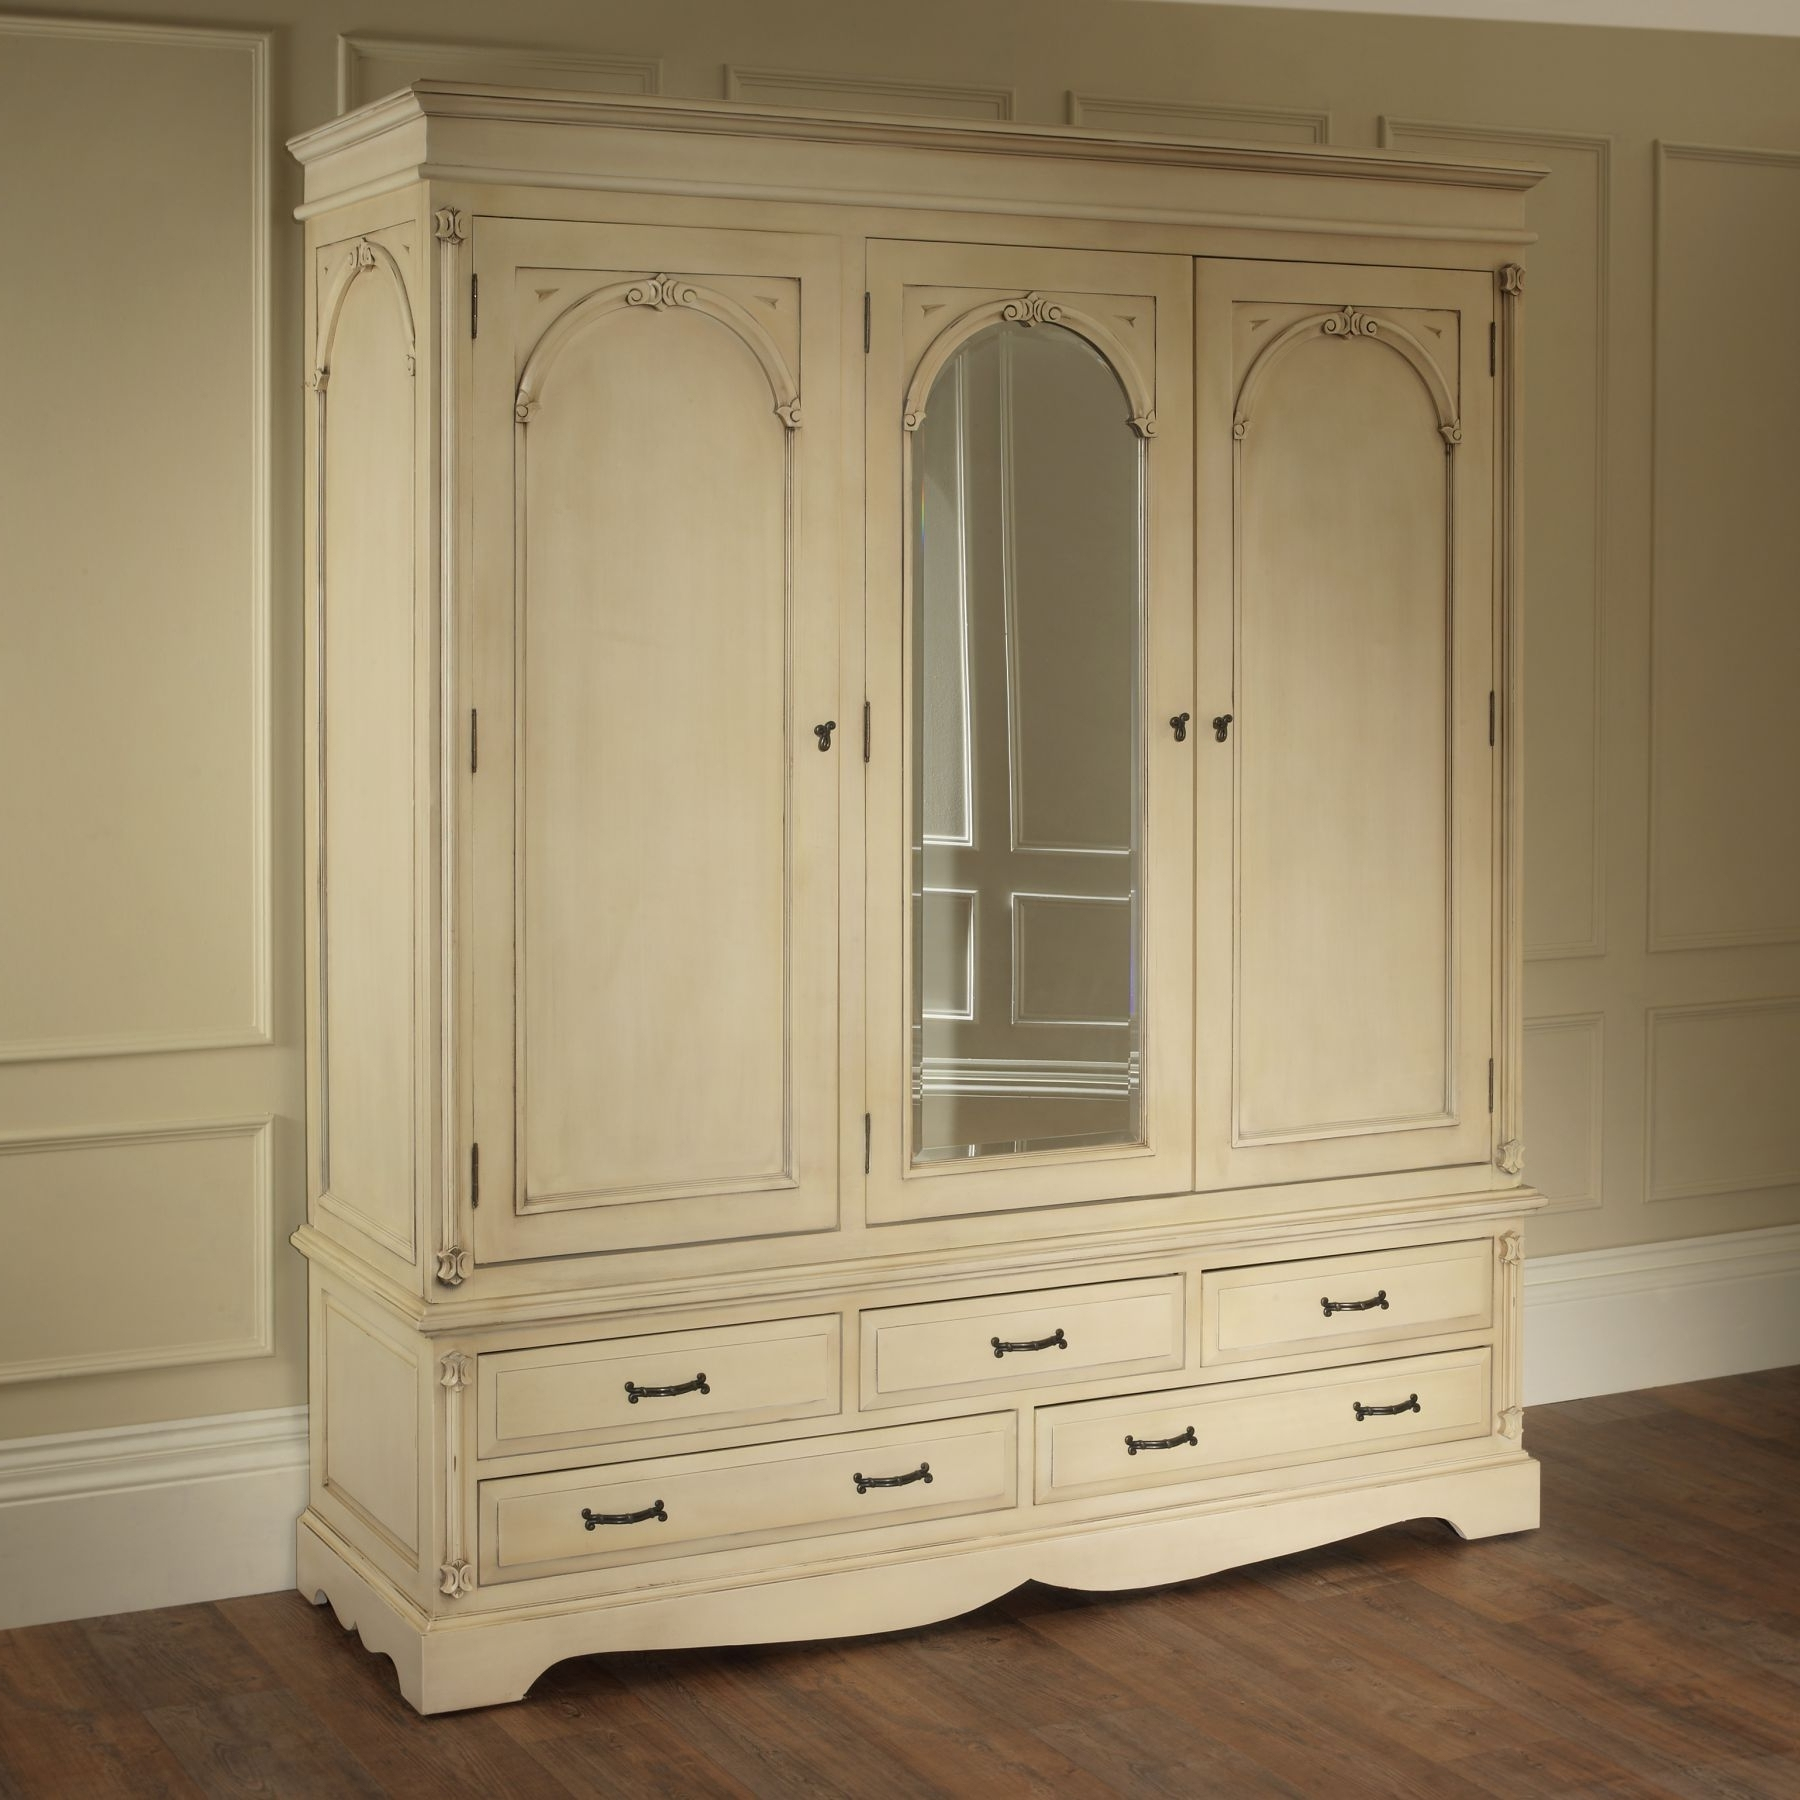 French Style Mirrors Cheap Wardrobes Cream Wardrobe Armoires Doors In Most Recent White French Armoire Wardrobes (View 7 of 15)